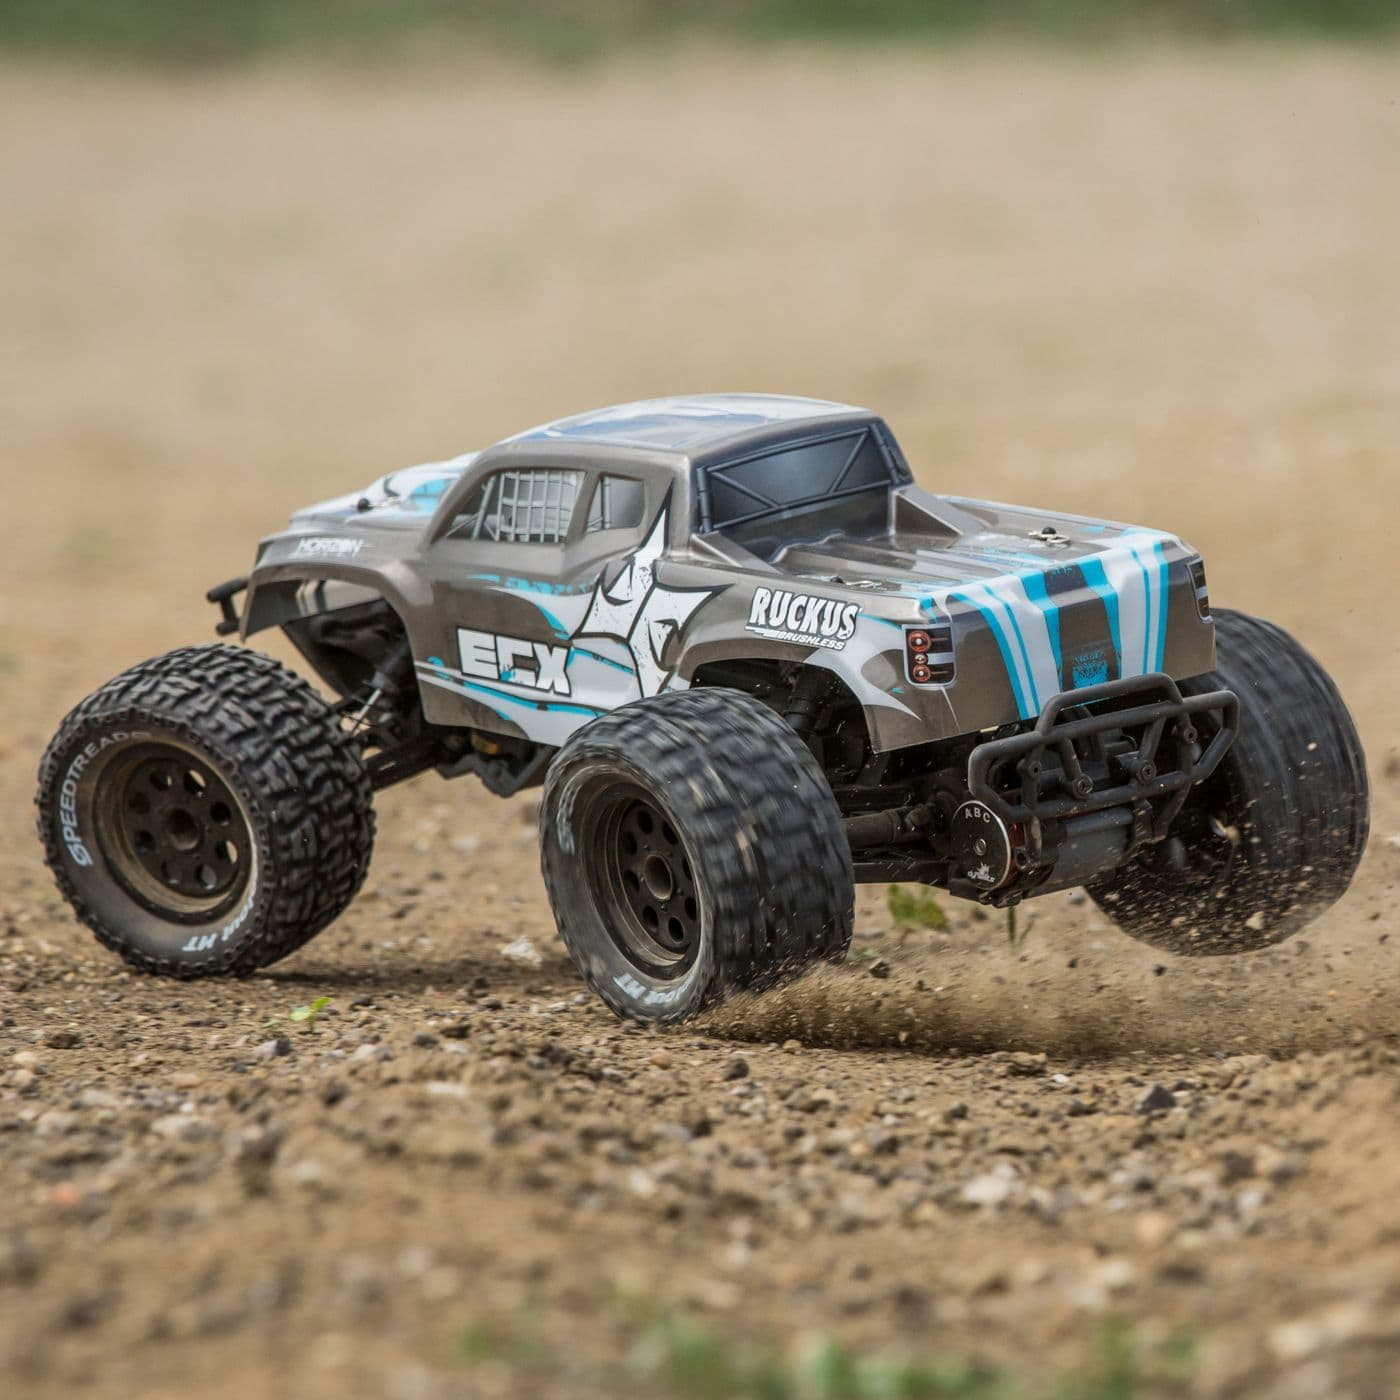 ECX Ruckus RC Monster Truck - Off-road